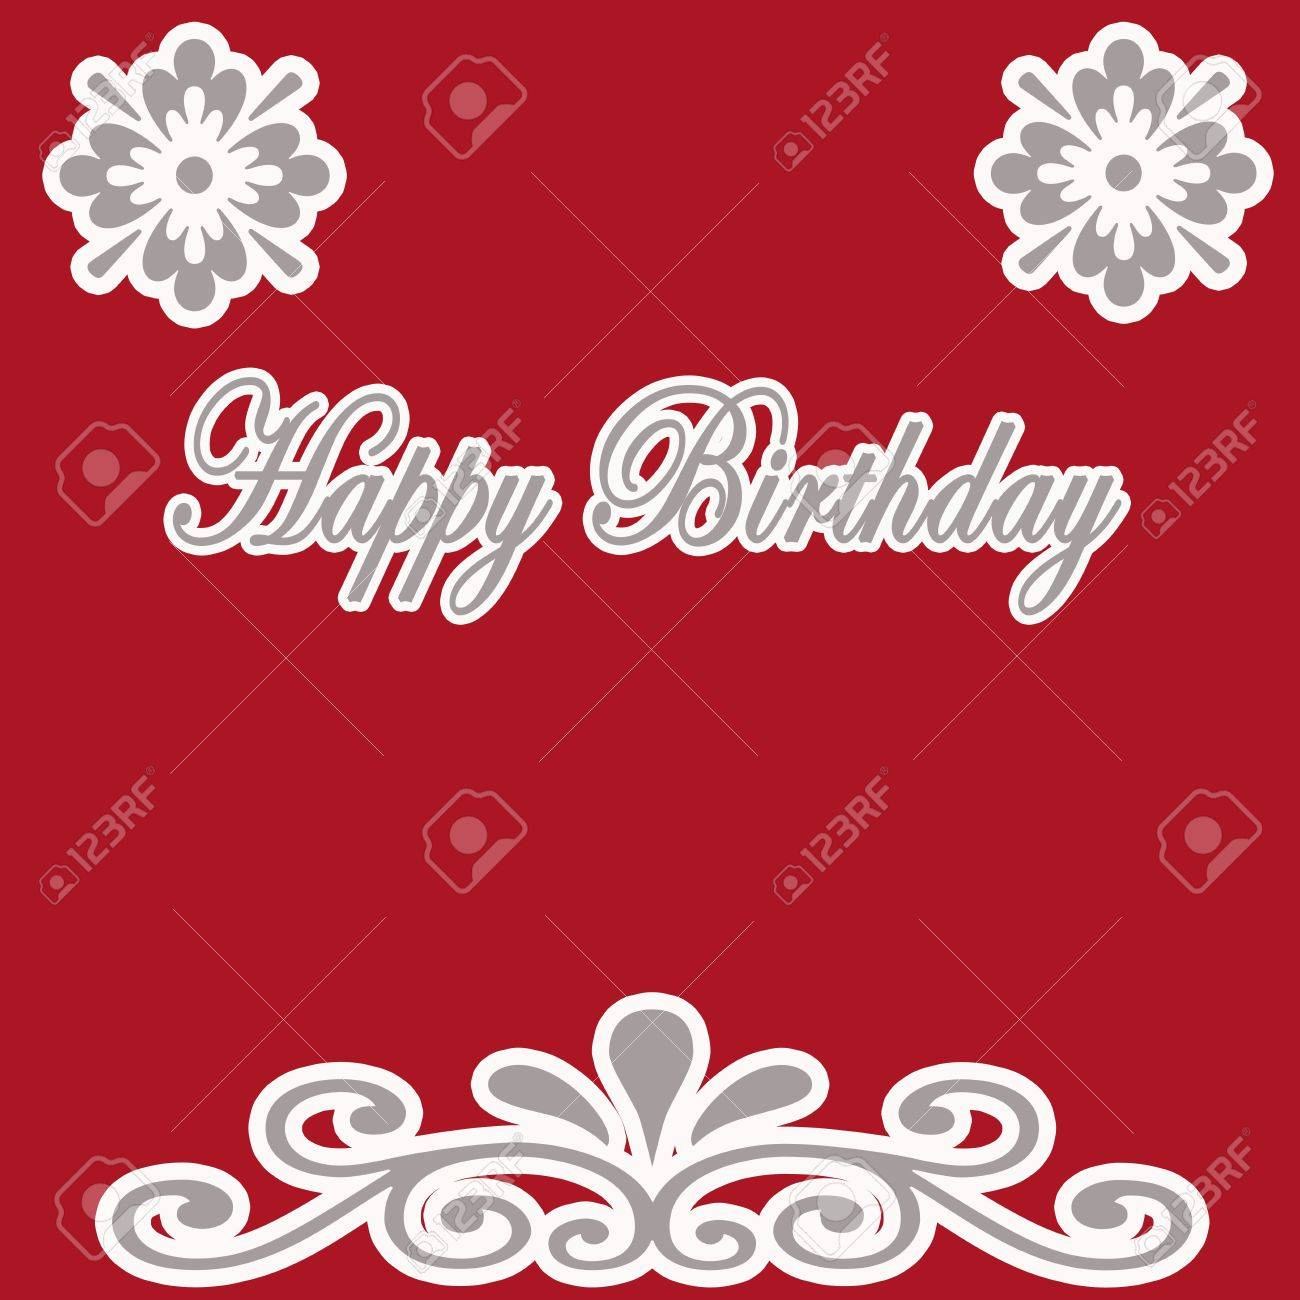 Birthday Card In Red Color Stock Photo Picture And Royalty Free